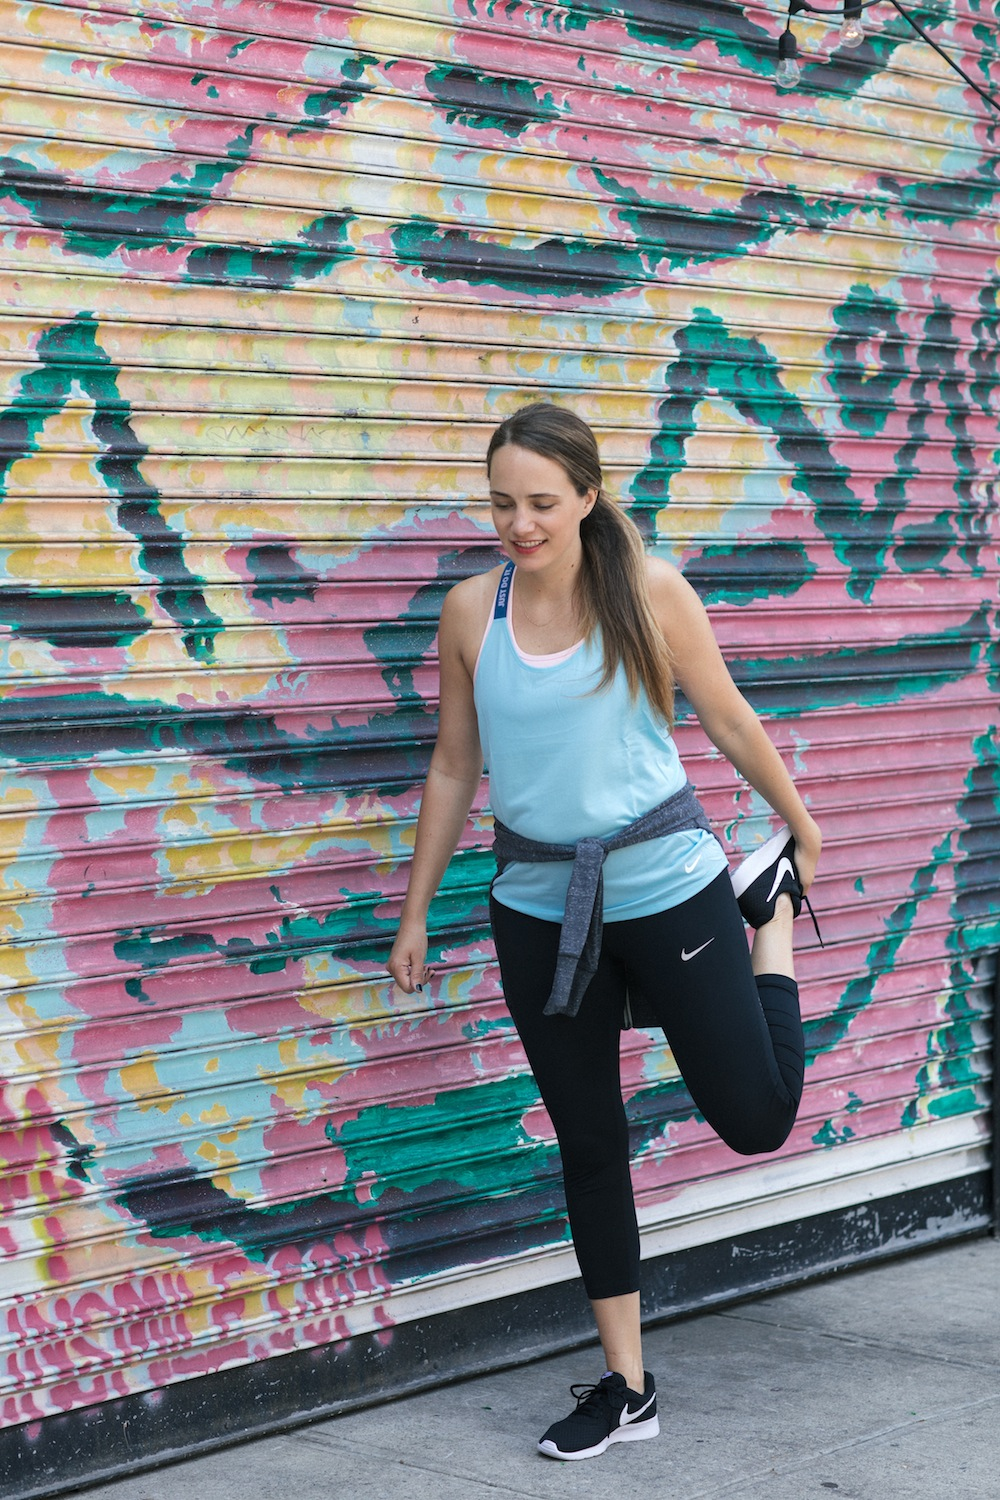 10 healthy changes to make now! | the stripe blog